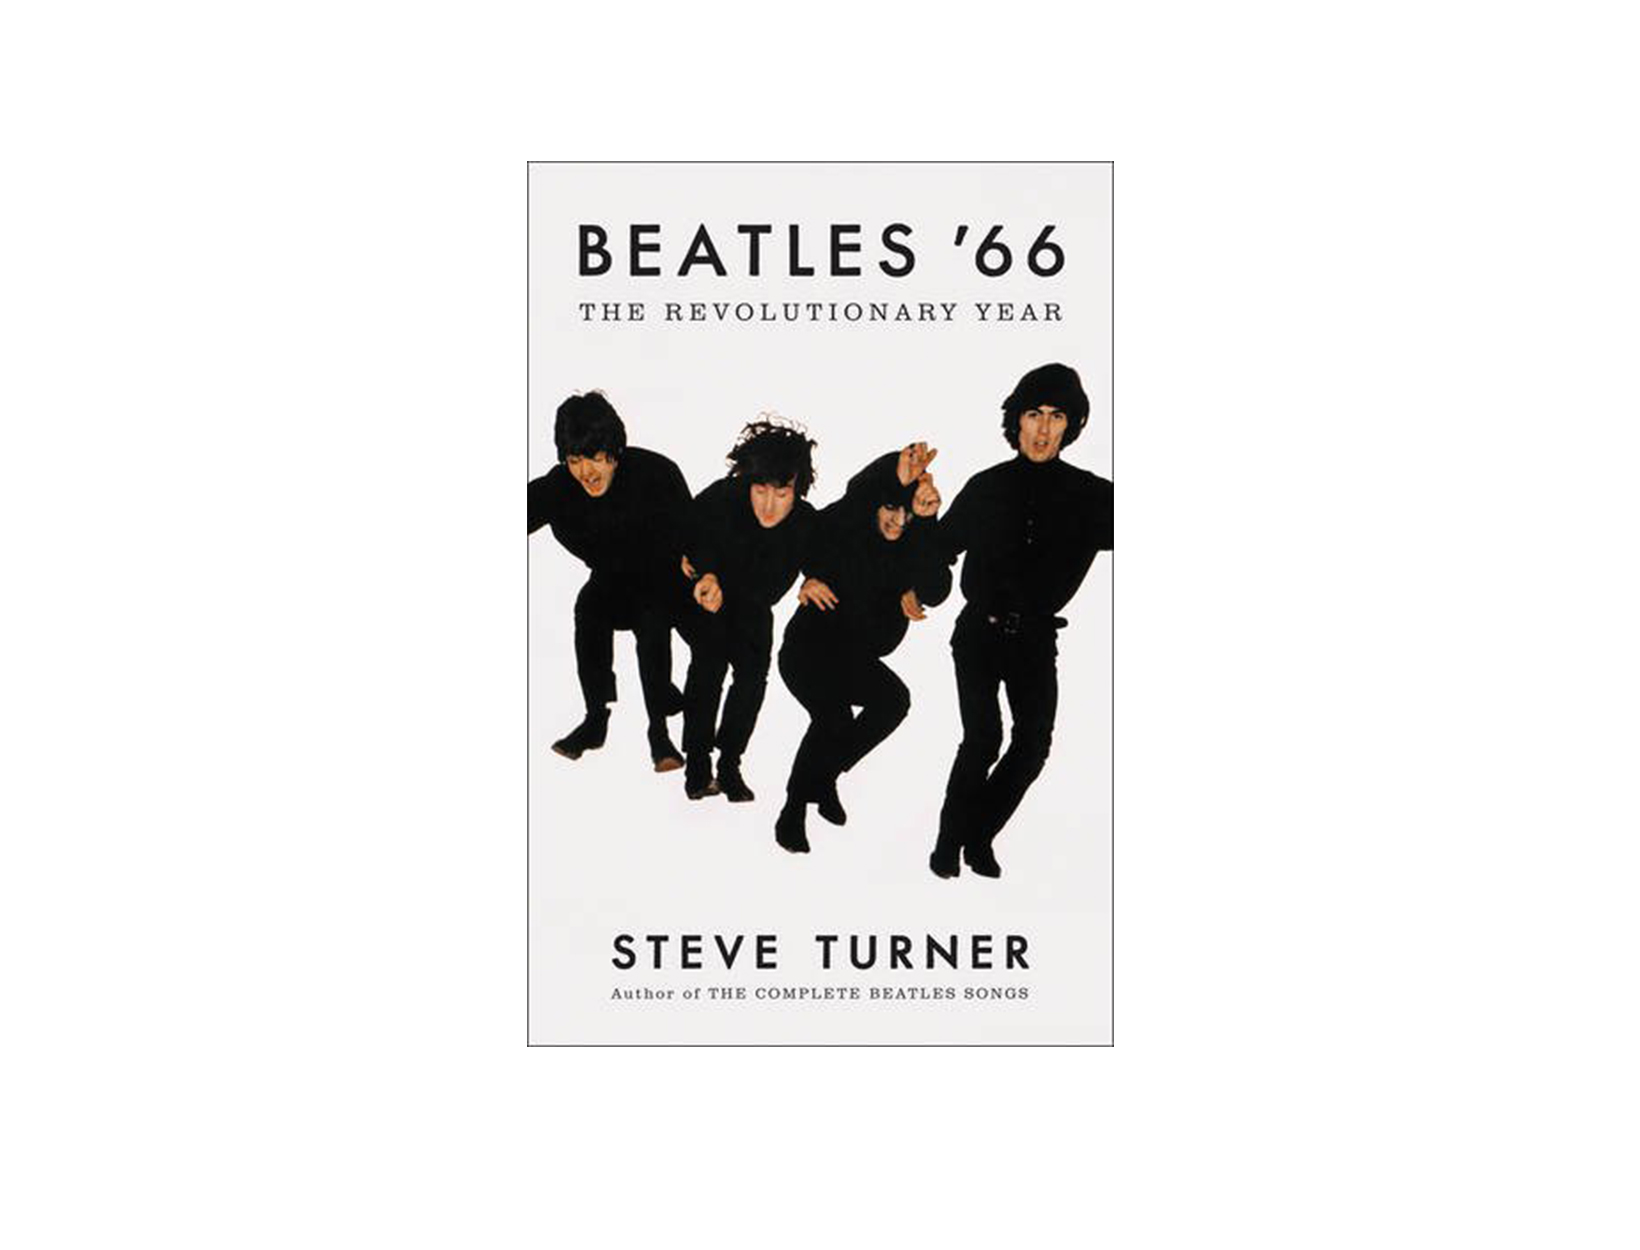 Beatles '66 by Steve Turner